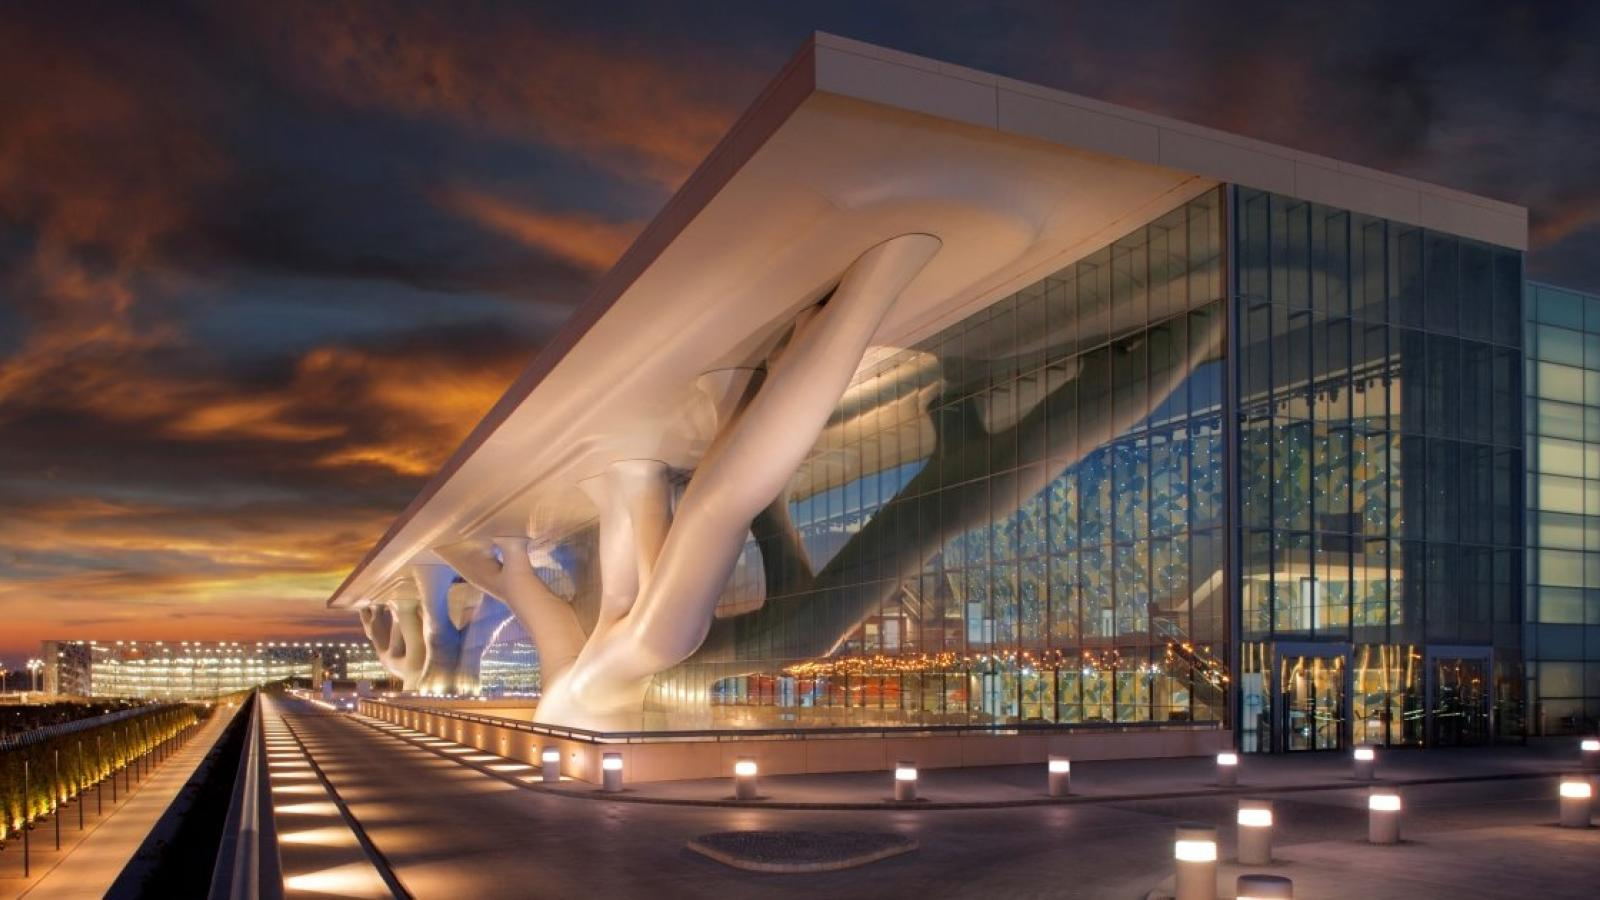 PHCC introduces measures to improve entry and waiting process at QNCC